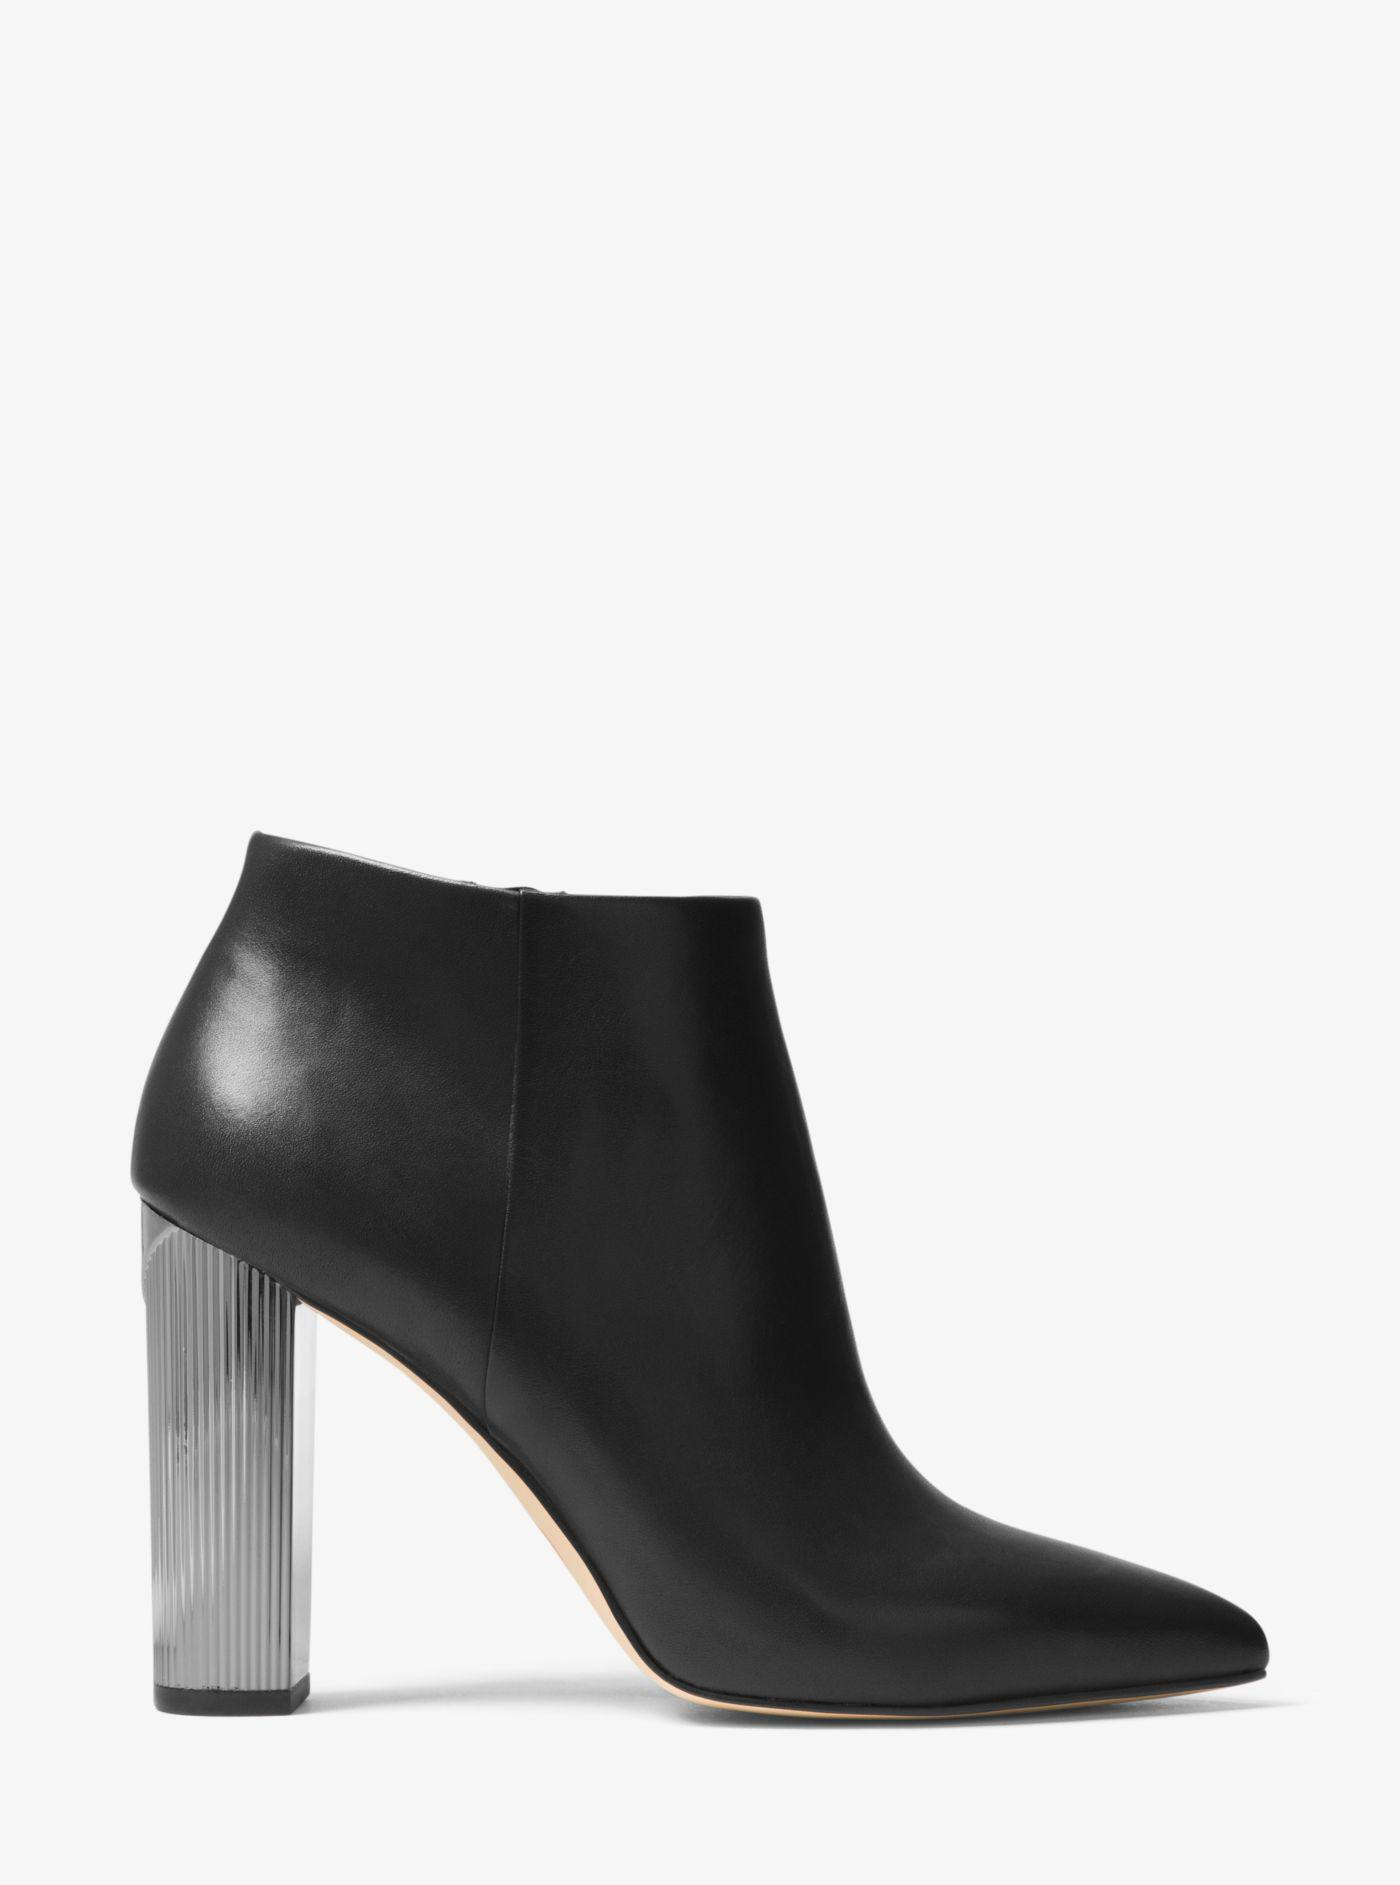 a767082ef5d1 Michael Kors Paloma Leather Bootie in Black - Lyst